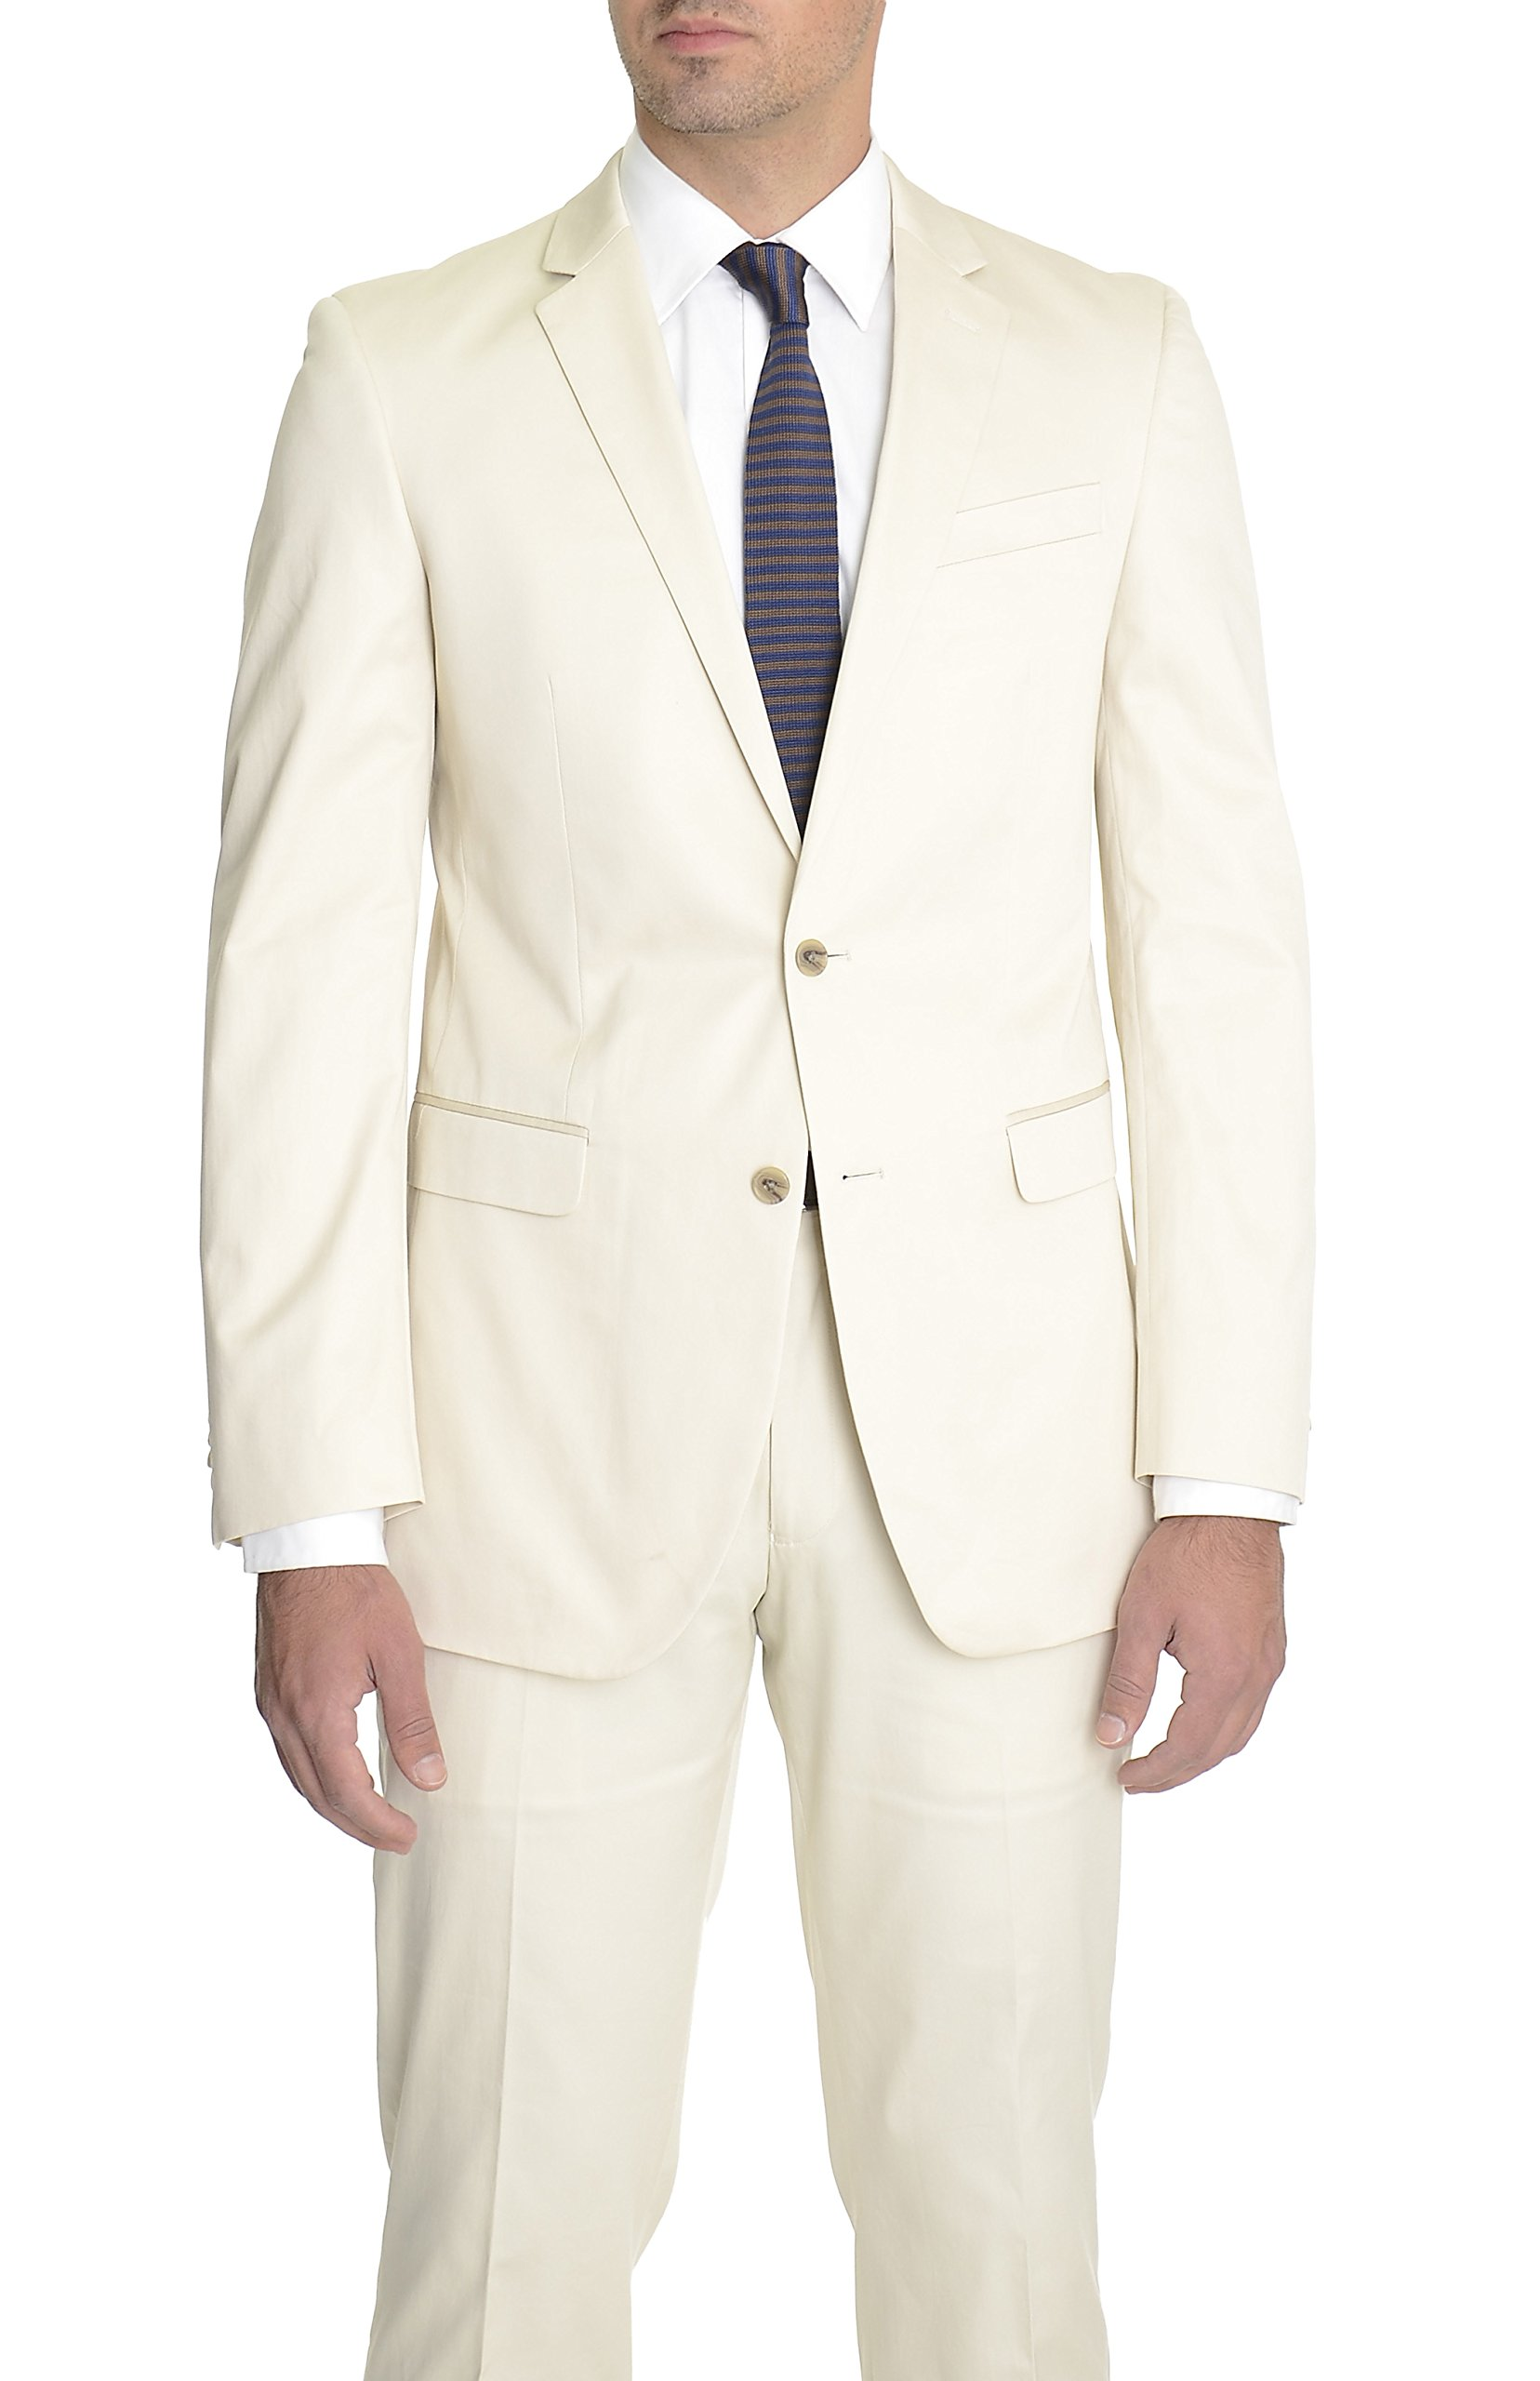 Kenneth Cole NY Slim Fit Collection Tan Two Button Cotton Summer Suit